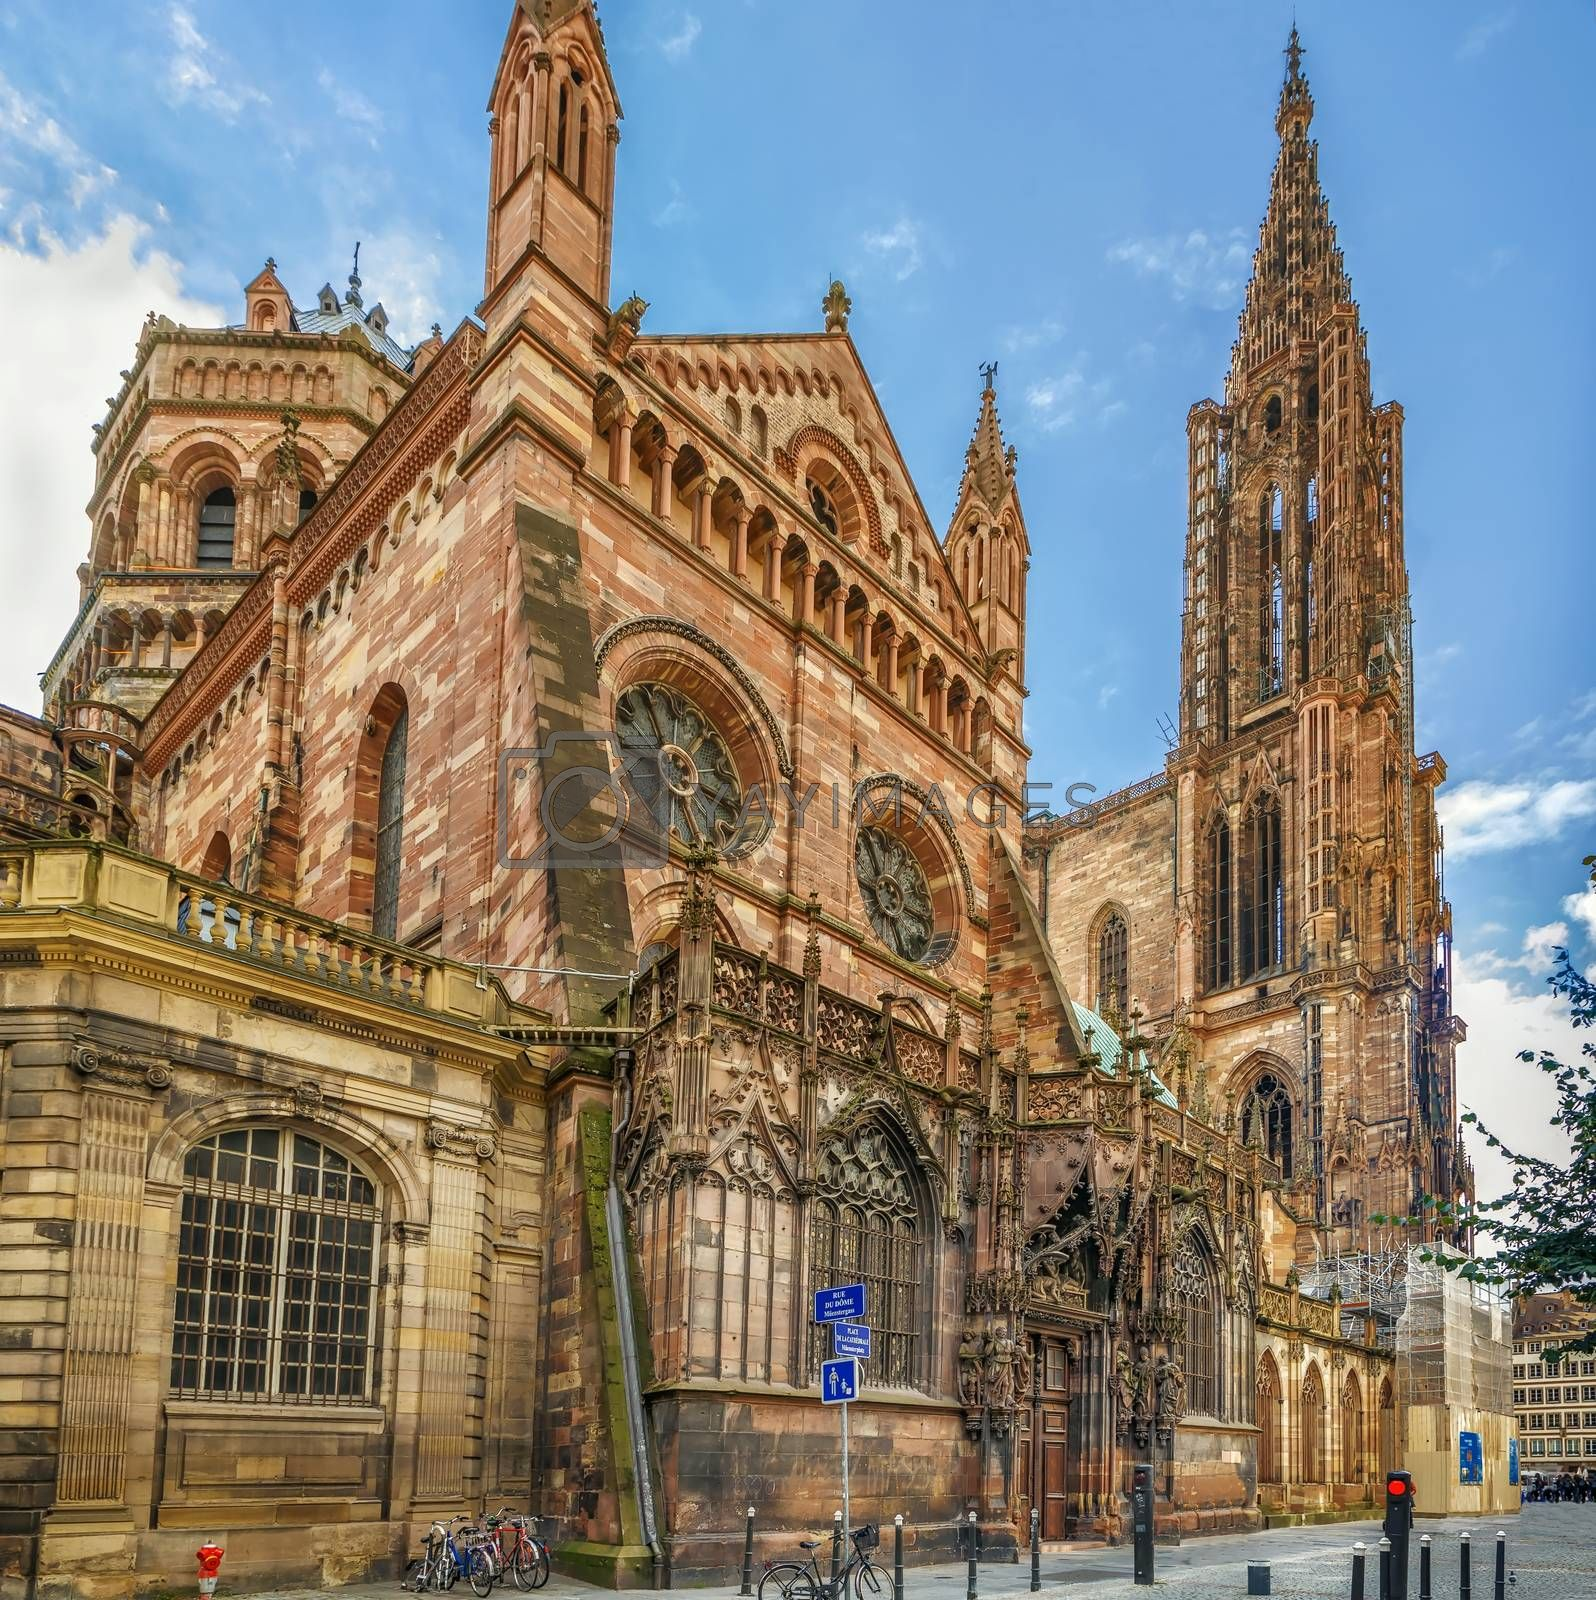 Strasbourg Cathedral also known as Strasbourg Minster, is a Gothic Roman Catholic cathedral in Strasbourg, Alsace, France. North portal